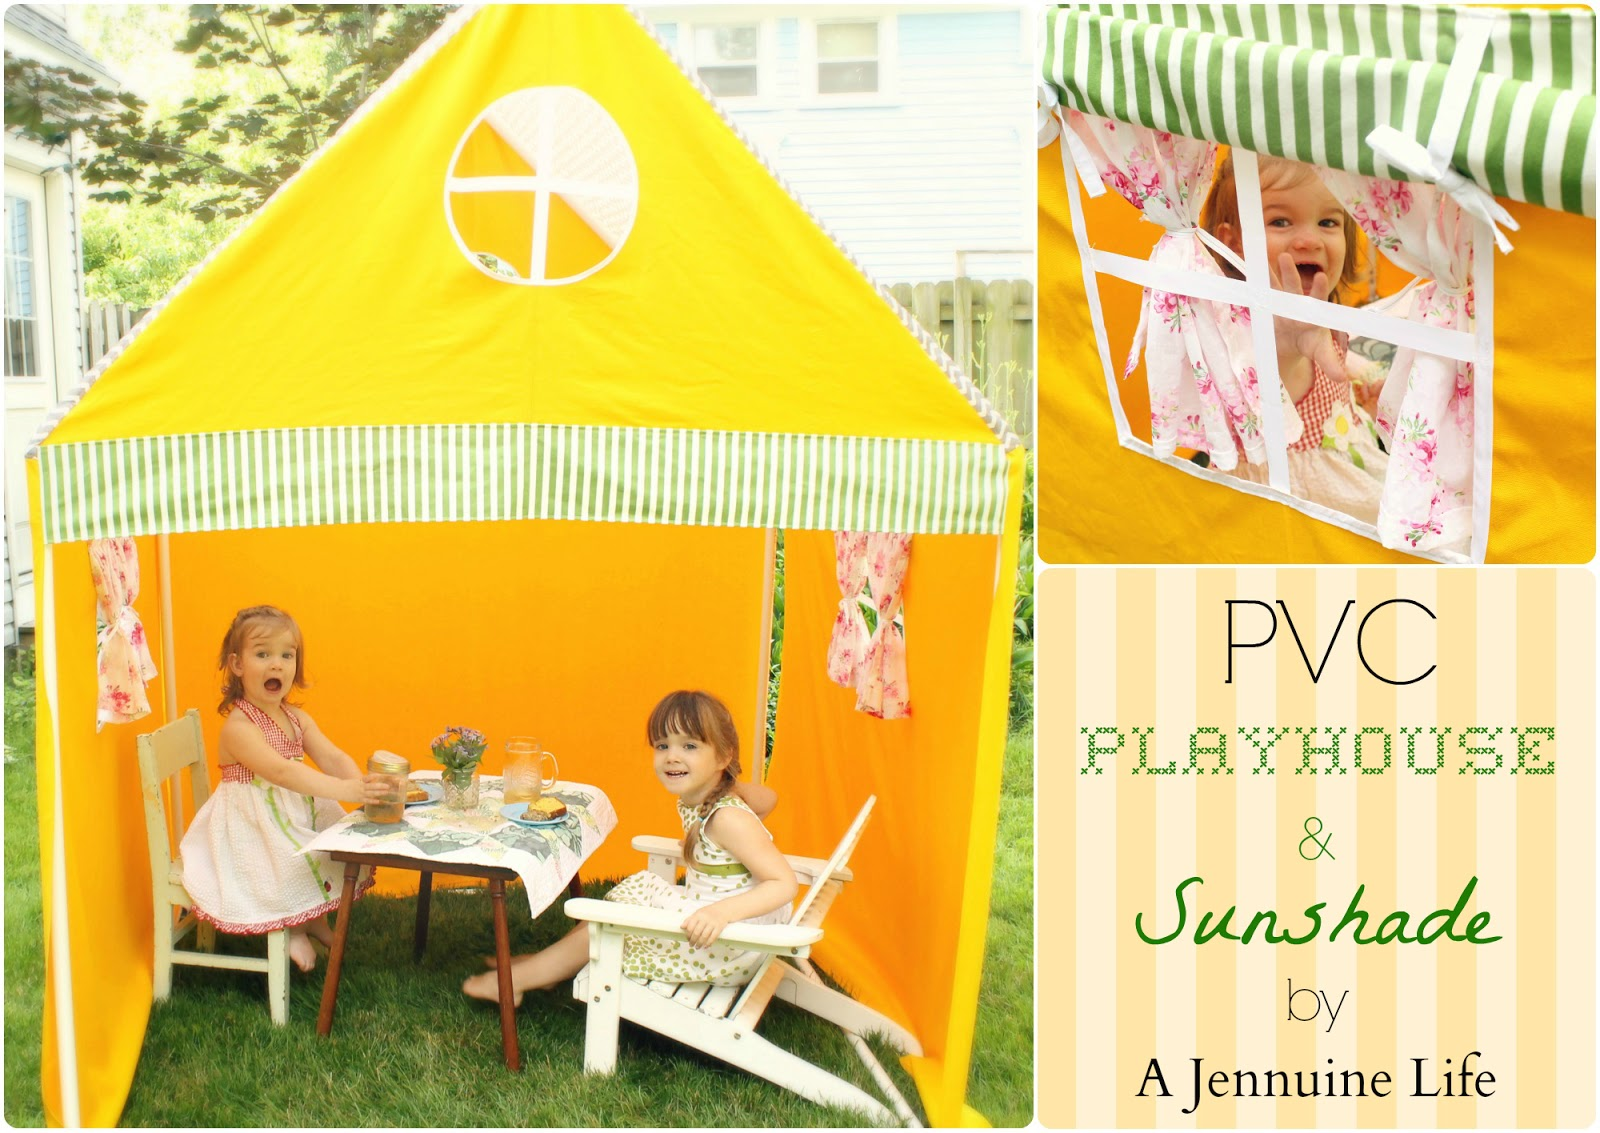 I created a playhouse-slash-sunshade out of PVC pipe and a tent I sewed to keep them covered while they enjoy hours of fun using their imaginations!  sc 1 st  The Girl Creative & PVC Playhouse and Sunshade create memories with kids - The Girl ...